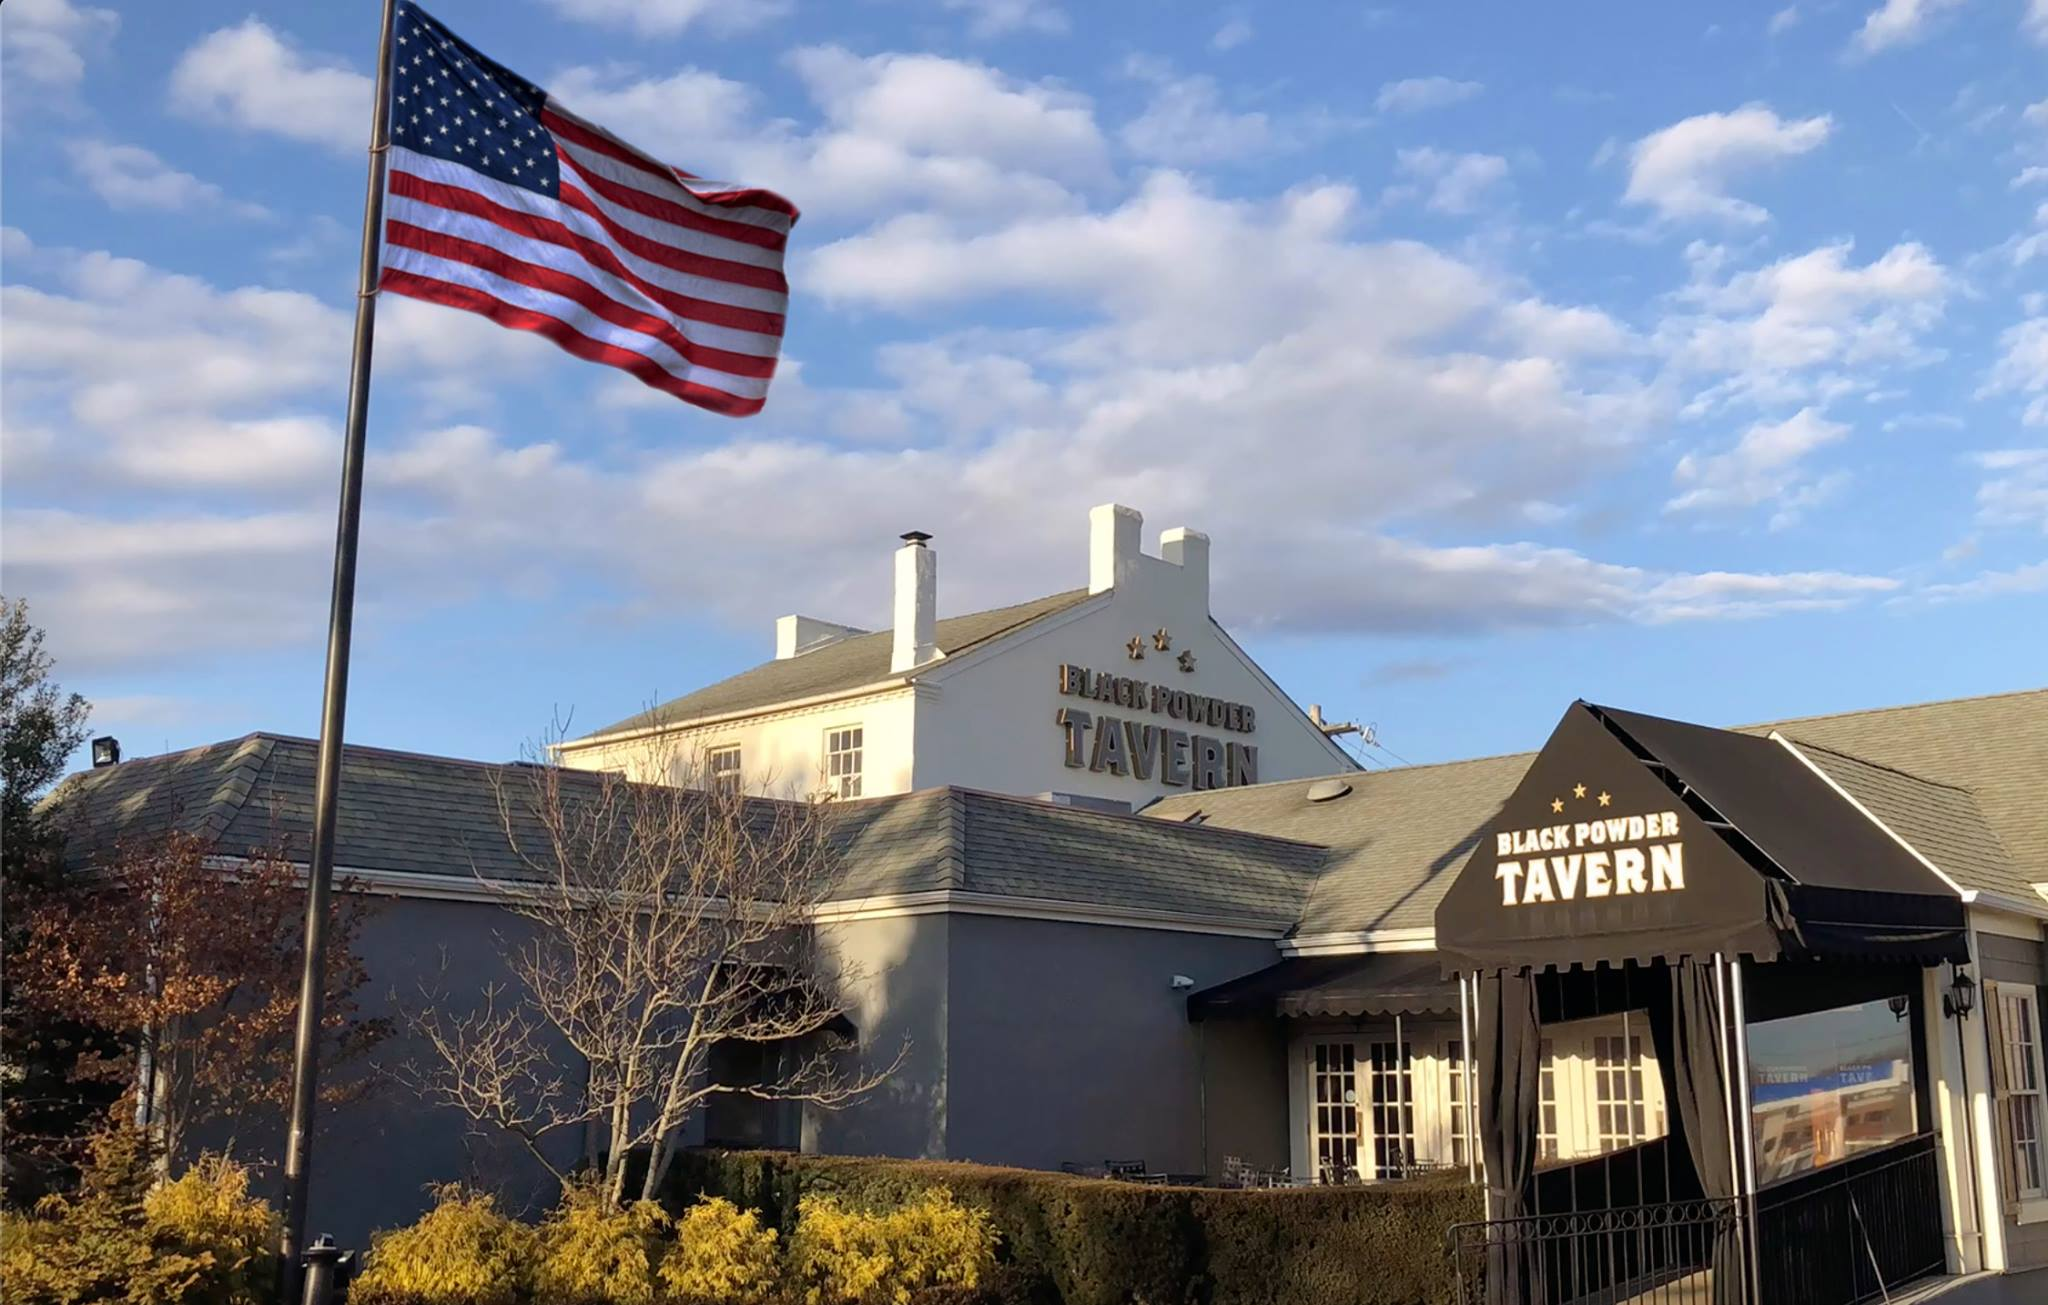 Historical Dinner Series at Black Powder Tavern